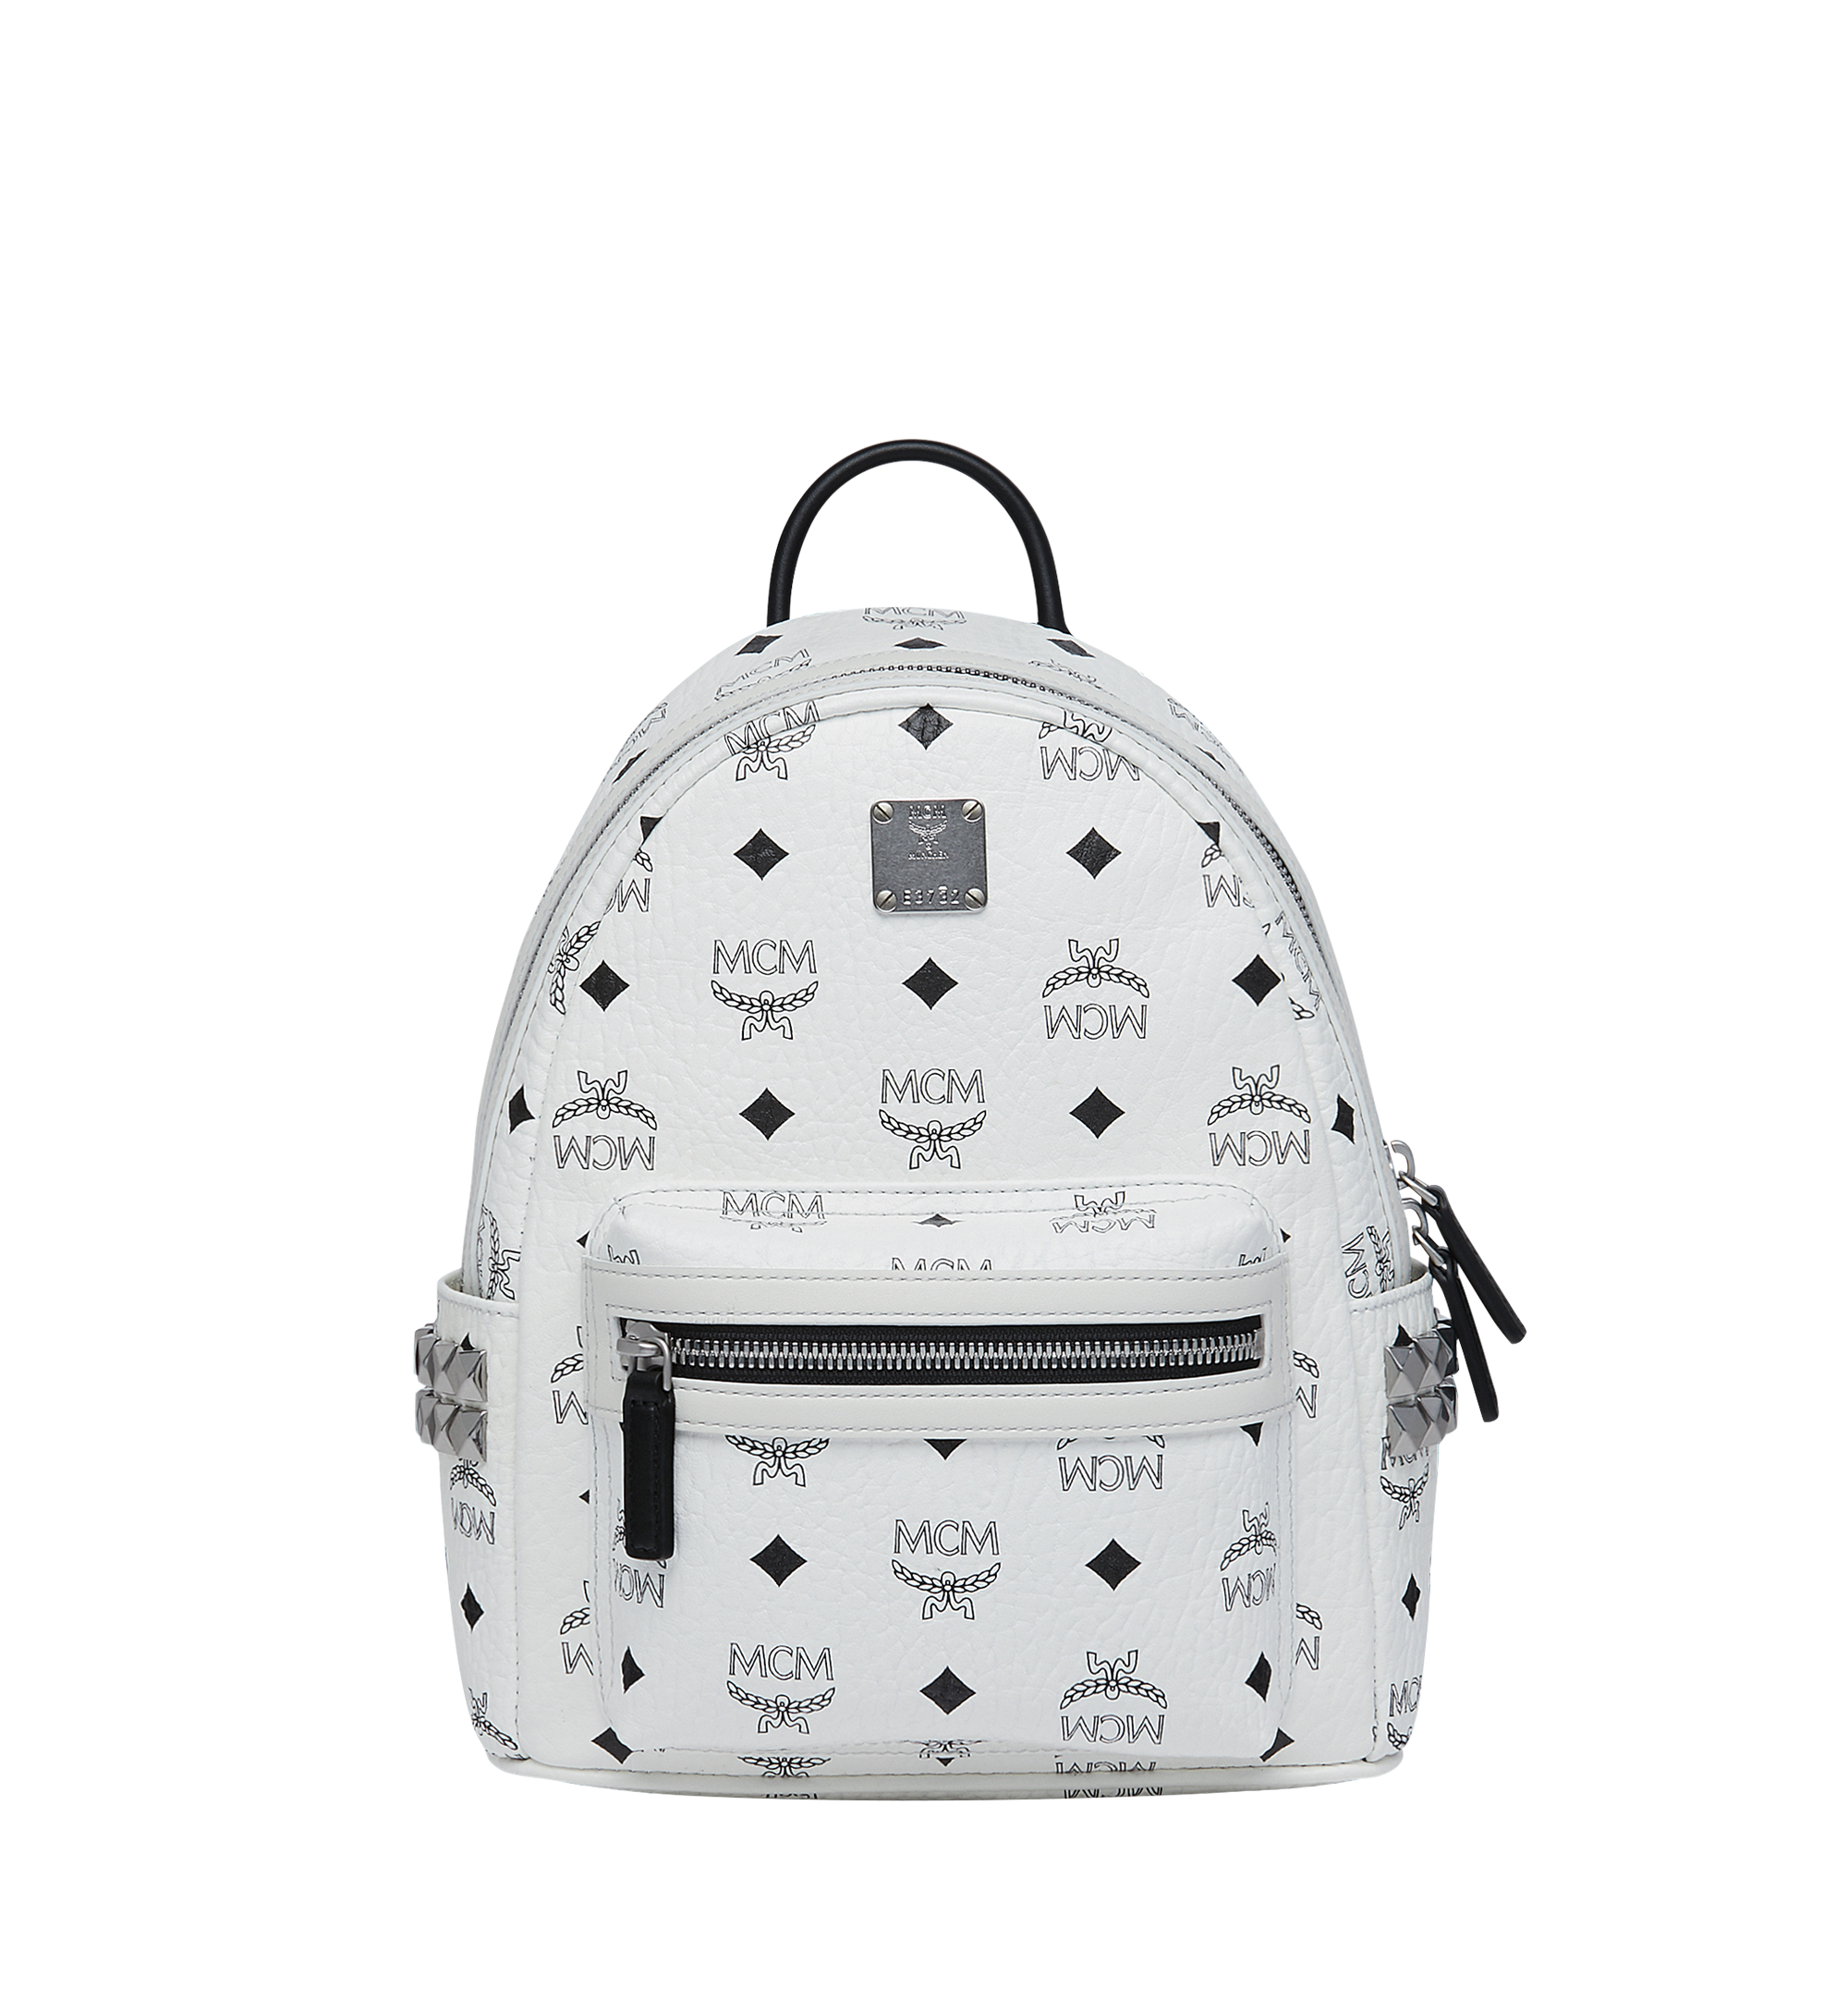 27 cm 10.5 in Stark Side Studs Backpack in Visetos White